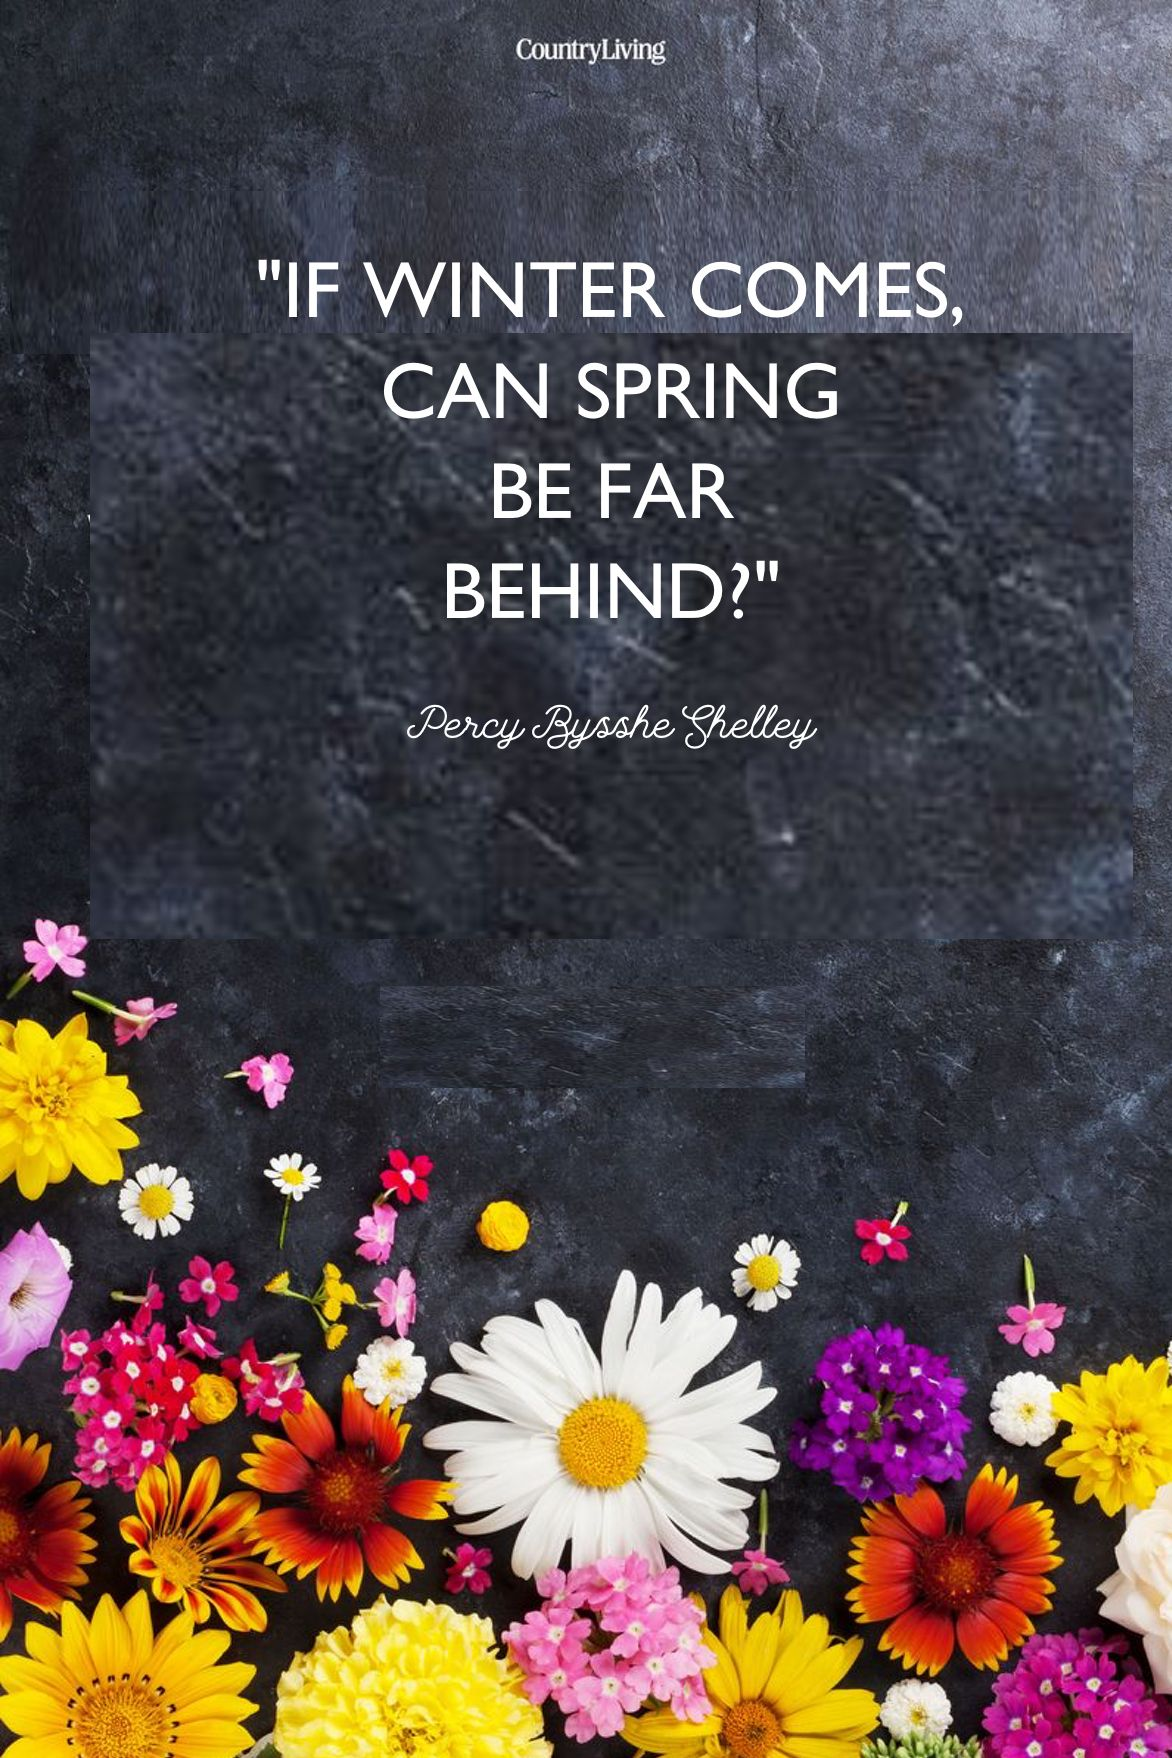 Winter and spring quotes